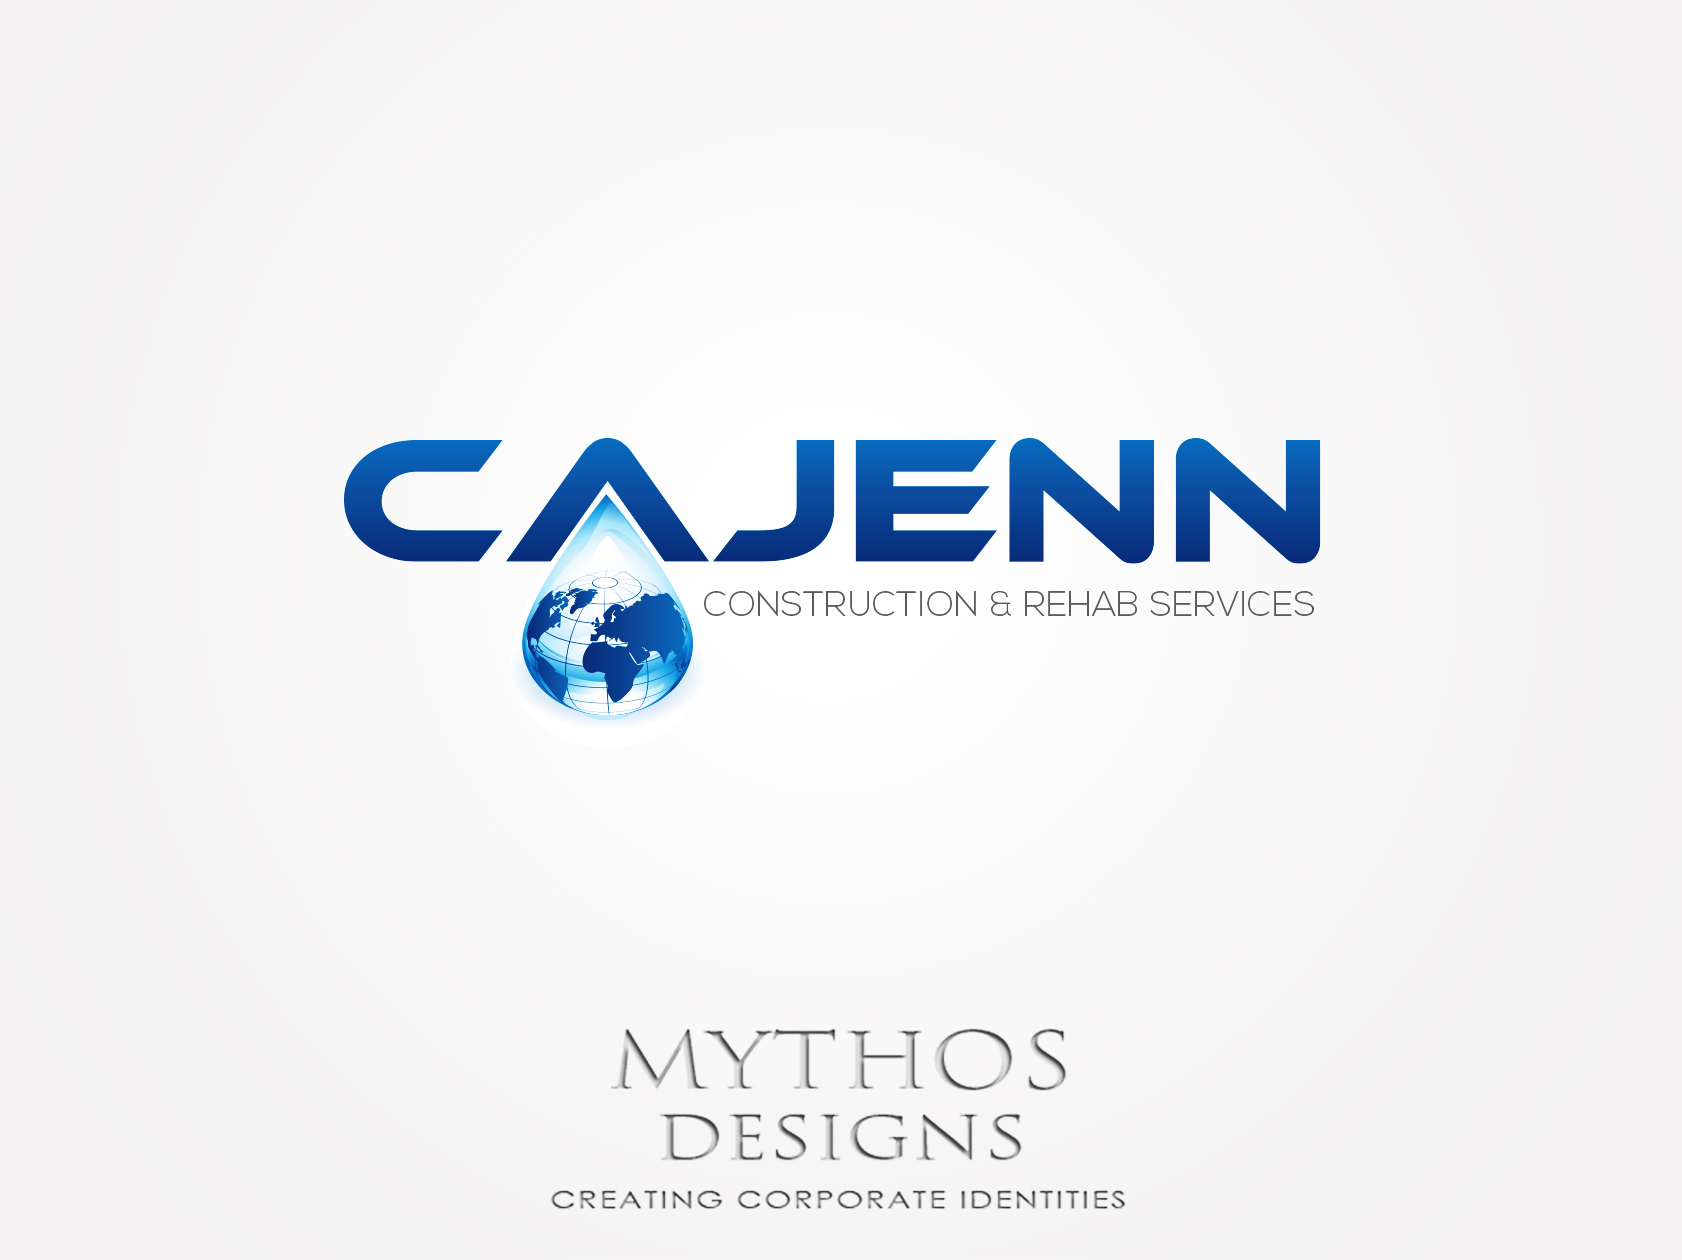 Logo Design by Mythos Designs - Entry No. 295 in the Logo Design Contest New Logo Design for CaJenn Construction & Rehab Services.